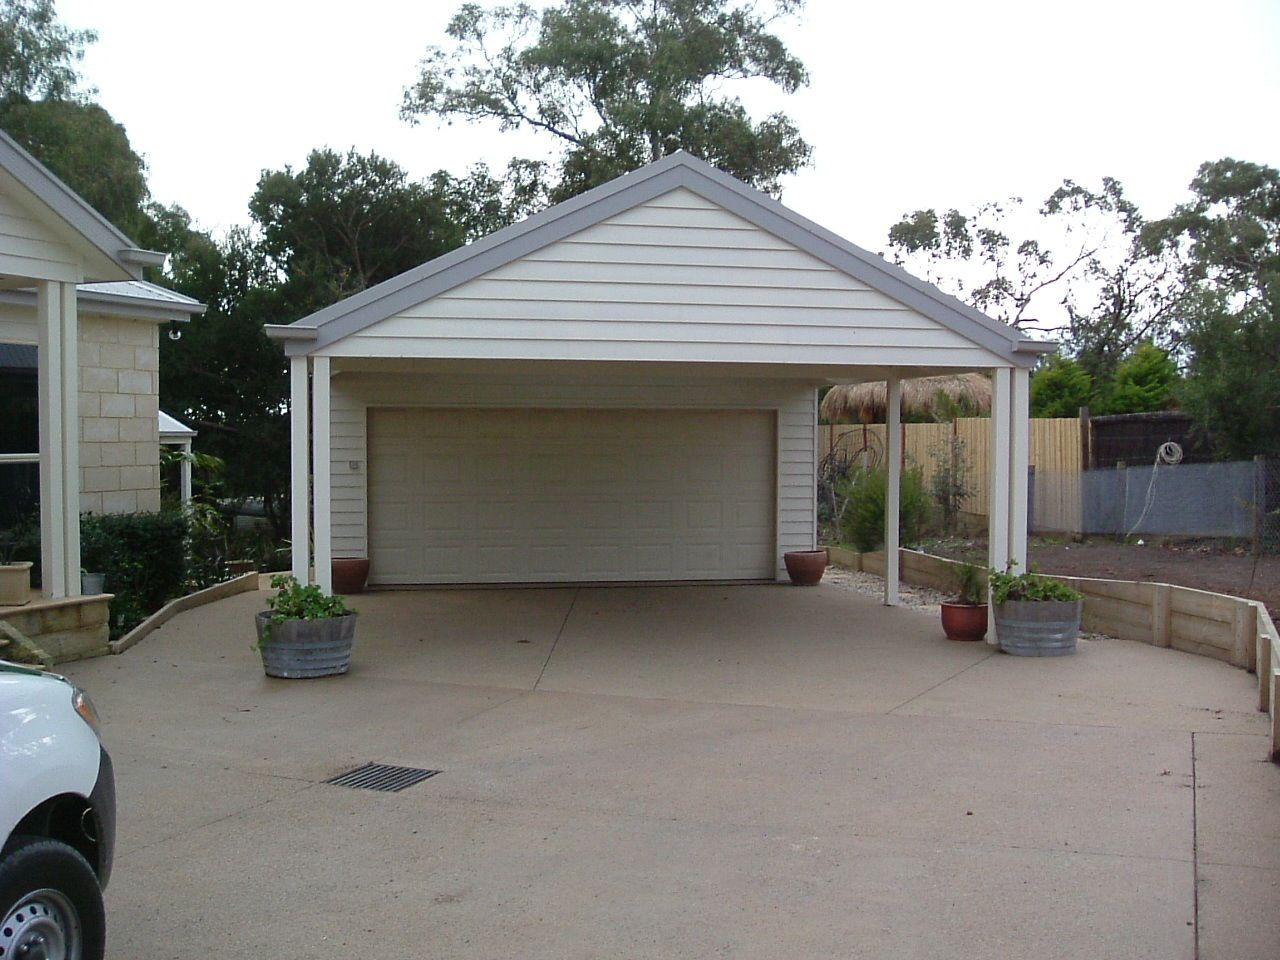 Carport ideas carport ideas pinterest carport ideas for Carport garages